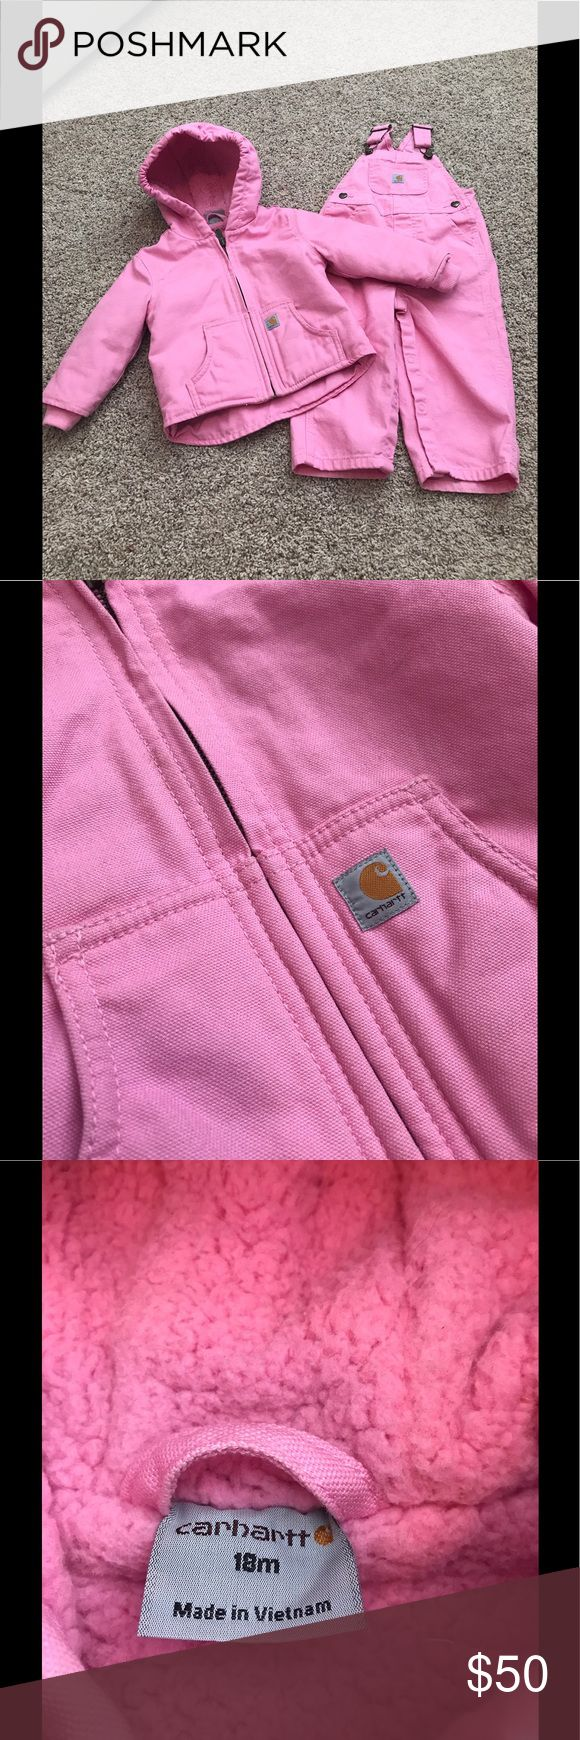 NWOT Pink Carhartt Overalls & Hooded Jacket Set NWOT Pink Carhartt Overalls & Hooded Jacket Set. Jacket is seeps lined for extra warmth and overalls have snap crotch for easy diaper changing. Never worn, but tags were removed. No trades please. Open to all reasonable offers. Carhartt Matching Sets